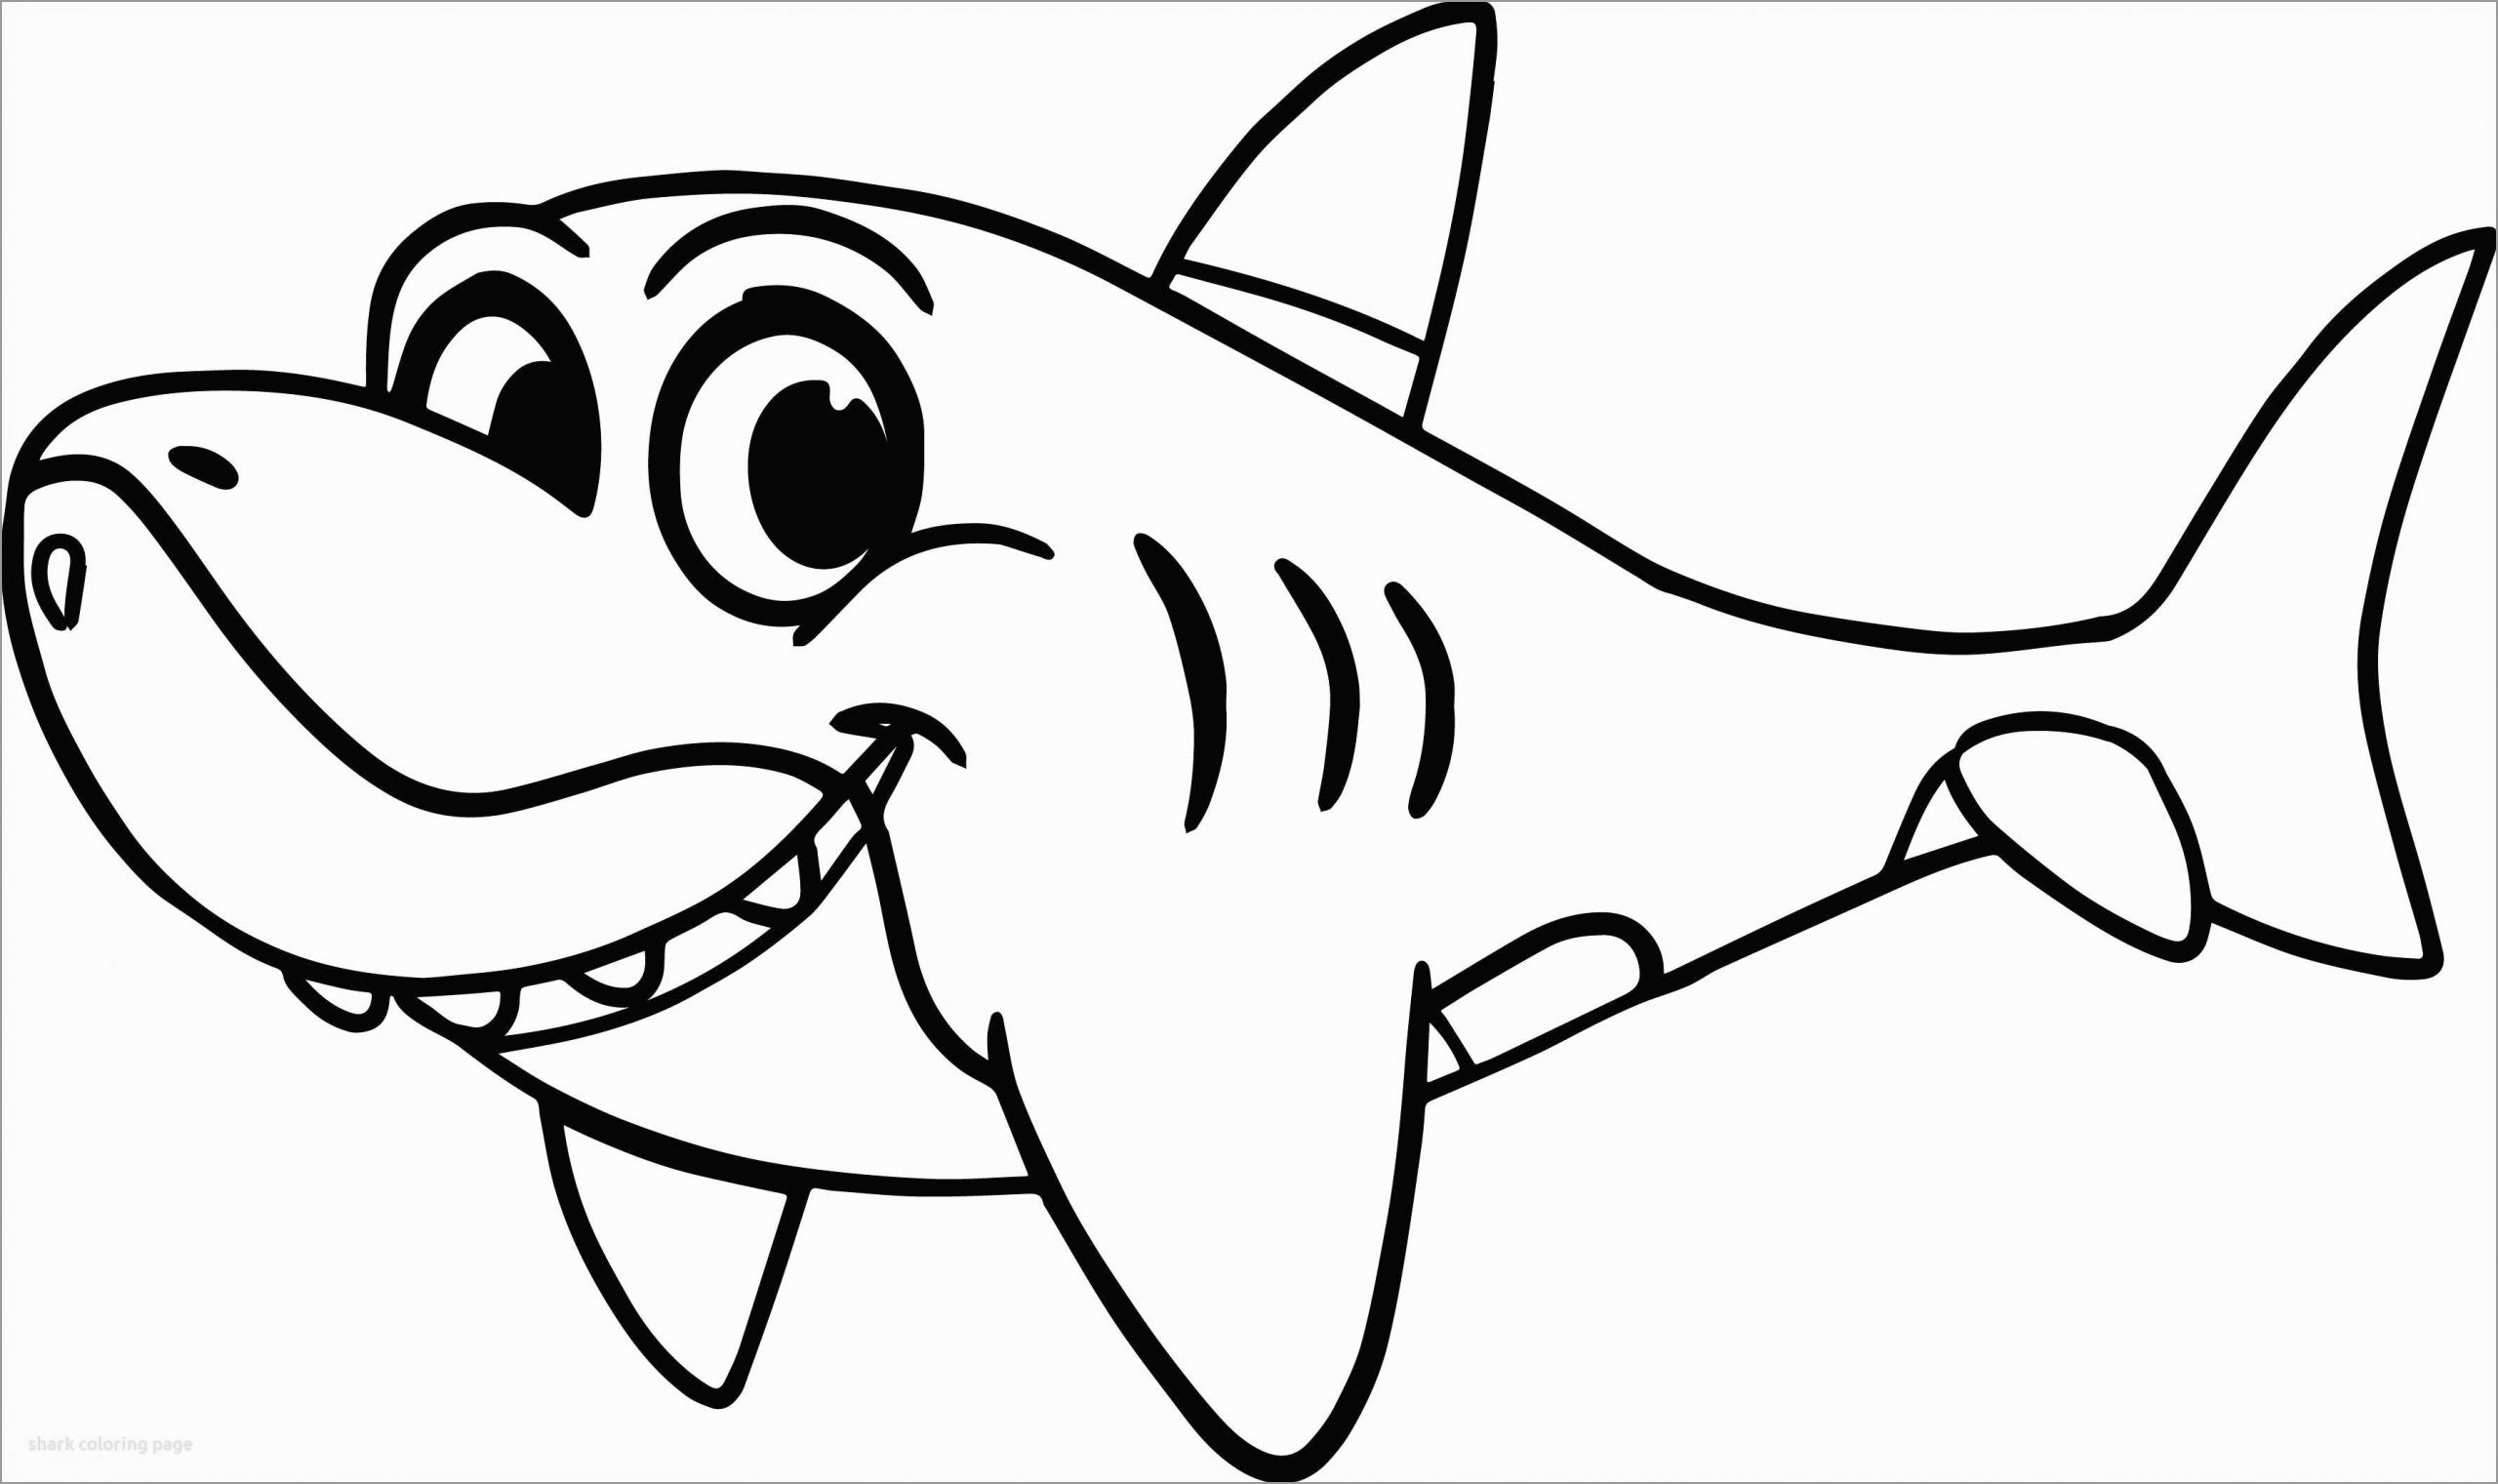 Cartoon Shark Coloring Page for Kids